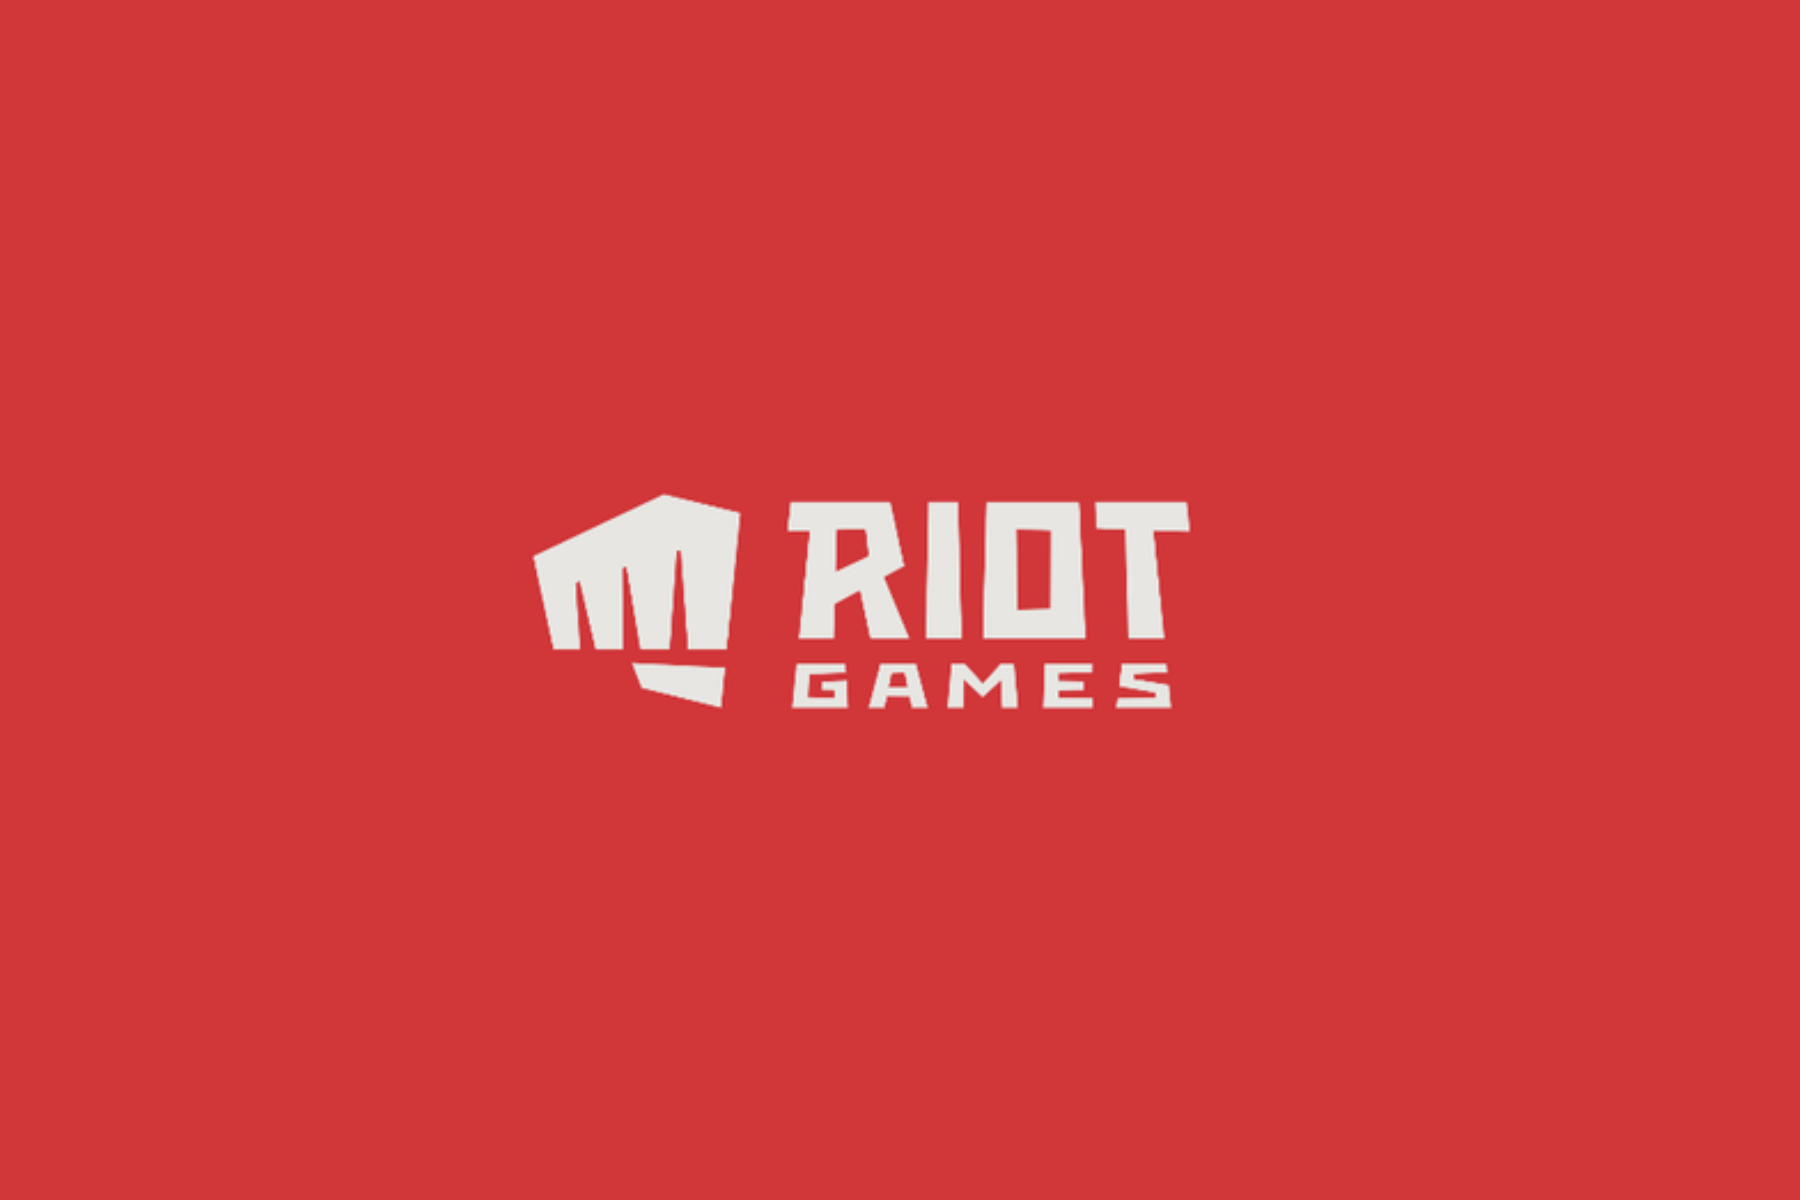 Riot Games new logo